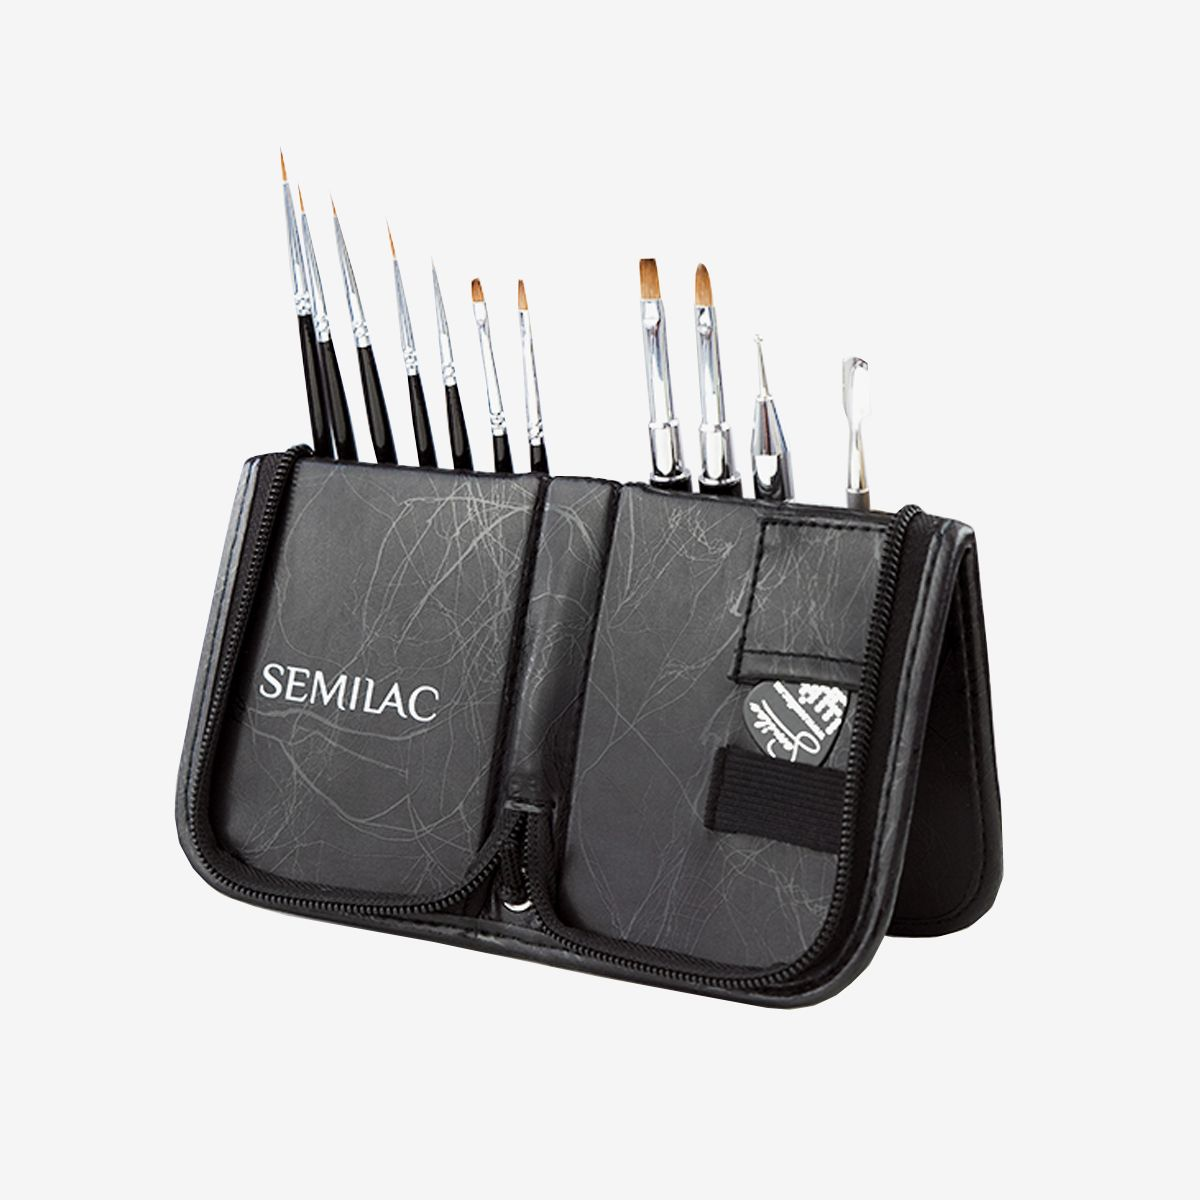 Semilac Holder for Brushes - FlowertushBeauty